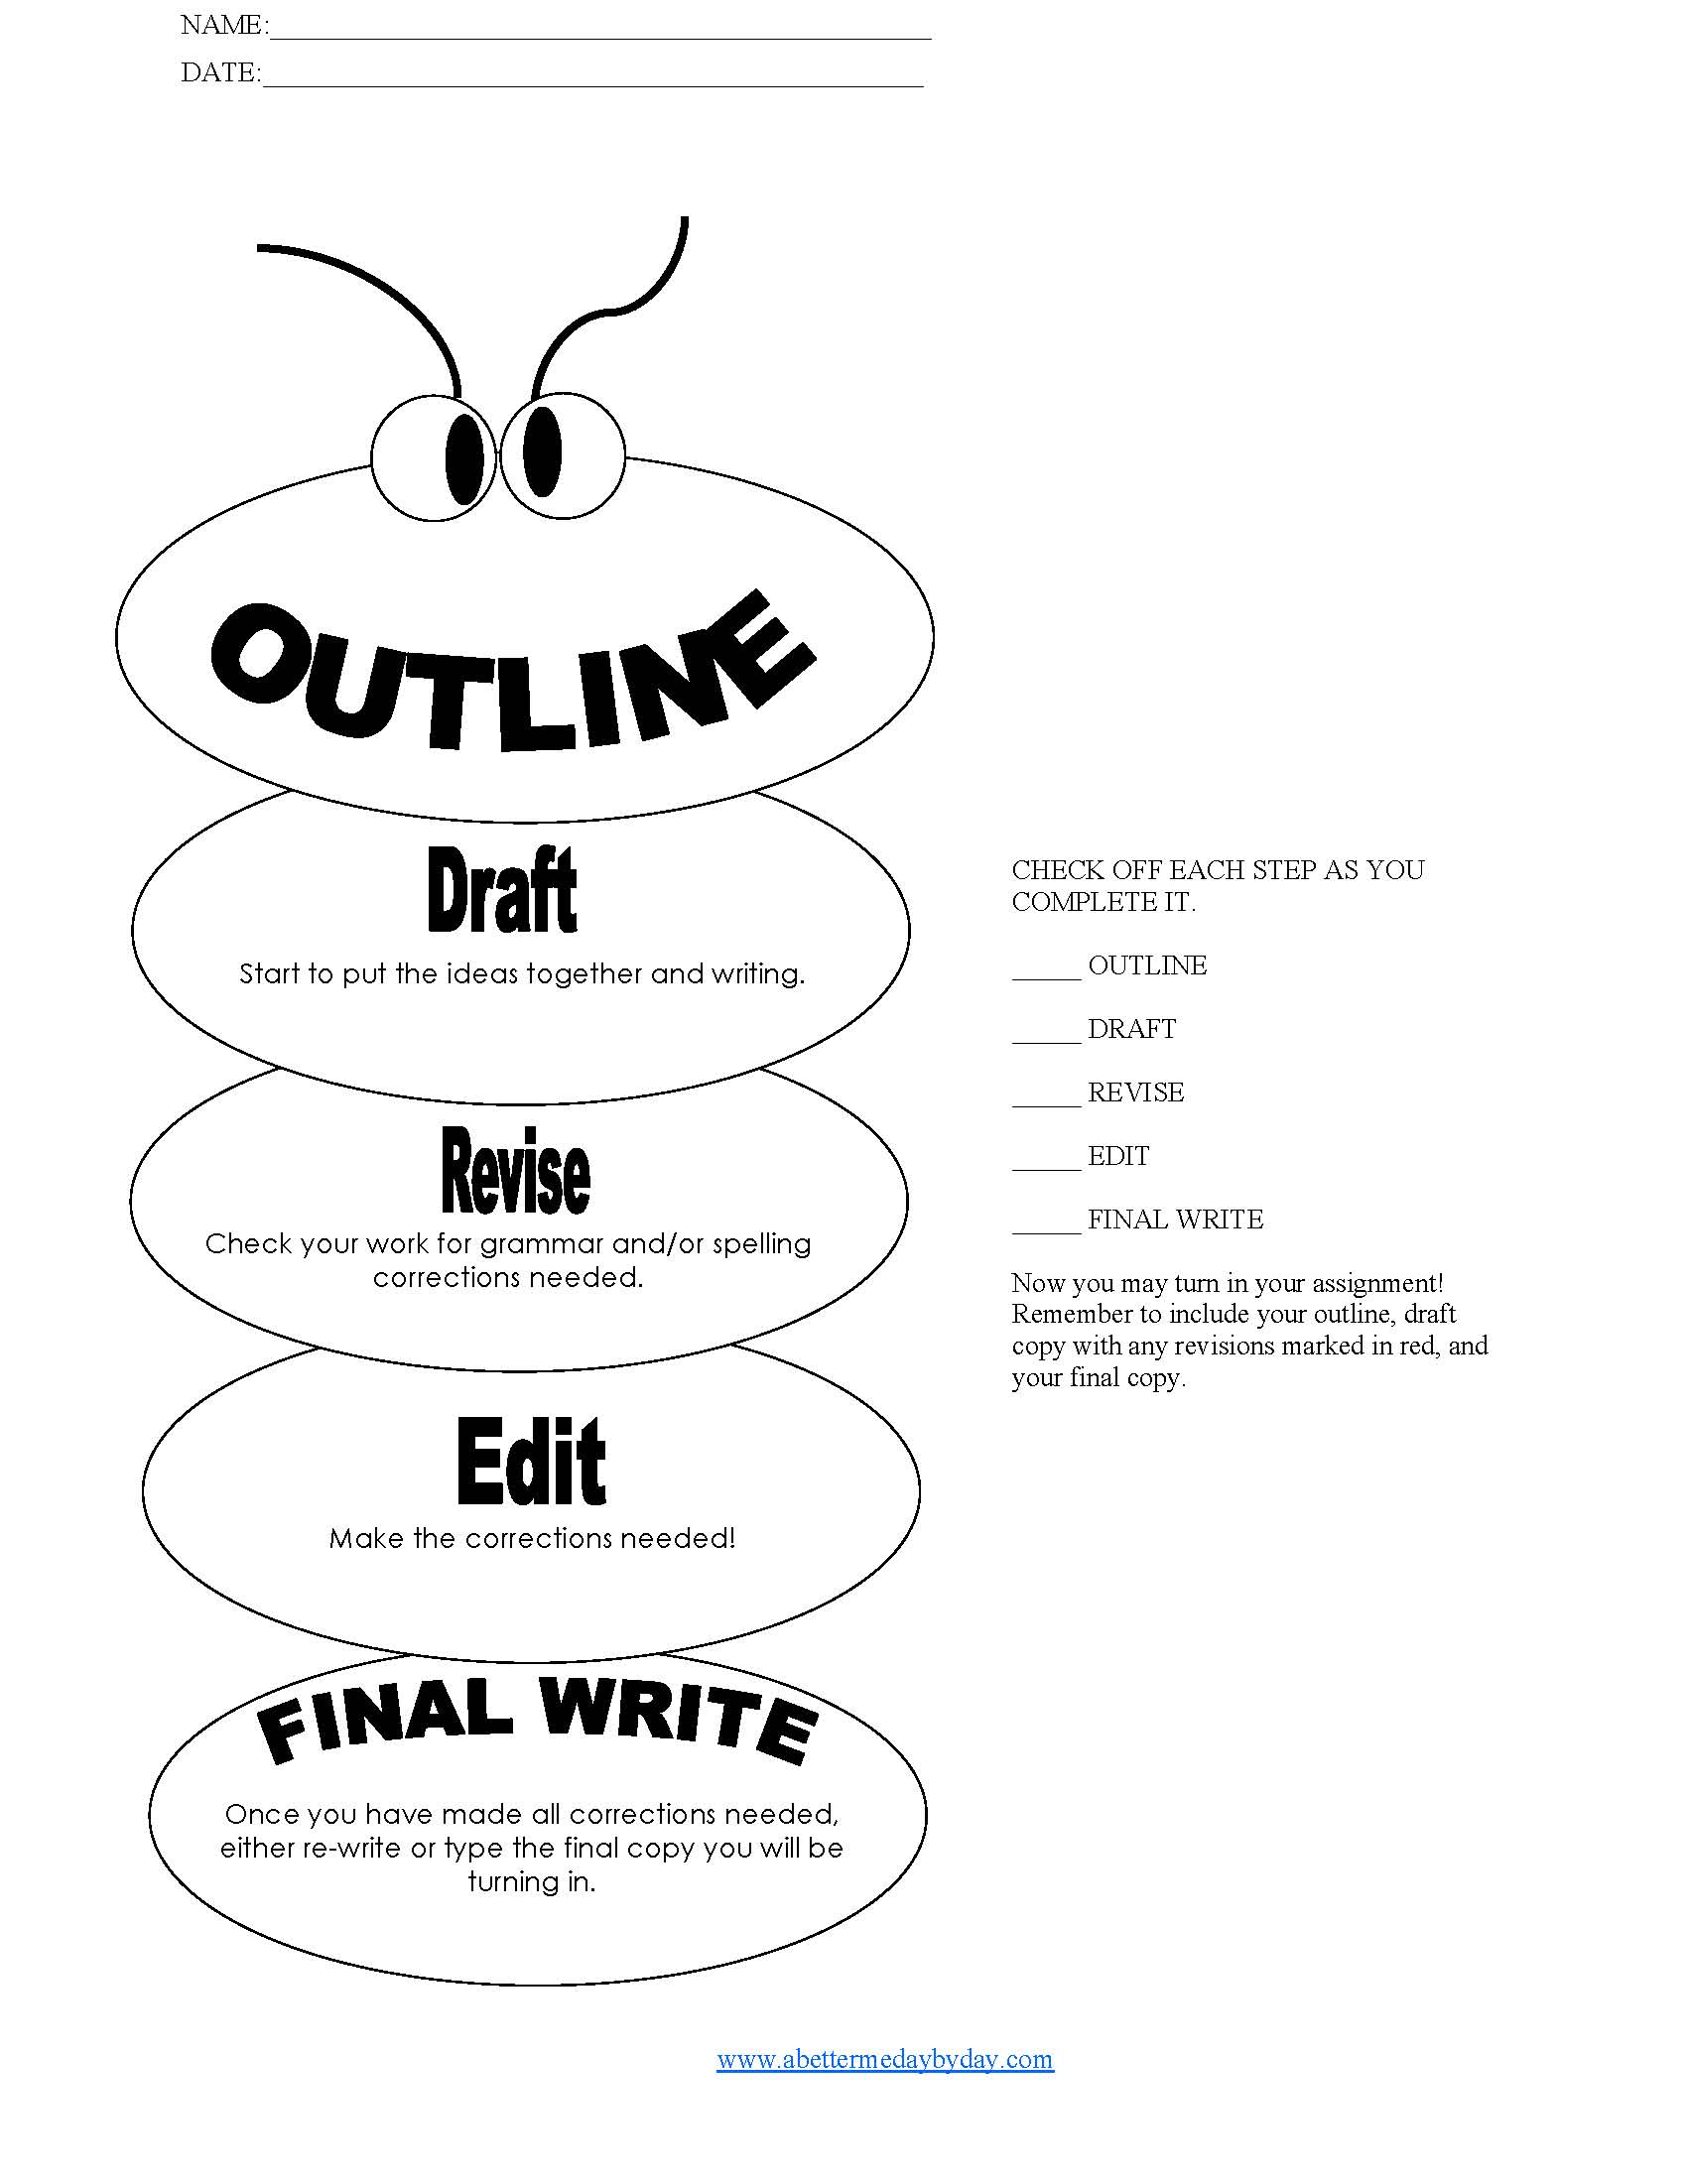 writing a outline essay writing outline pdf how to podcast tutorial - Writing An Outline For An Essay